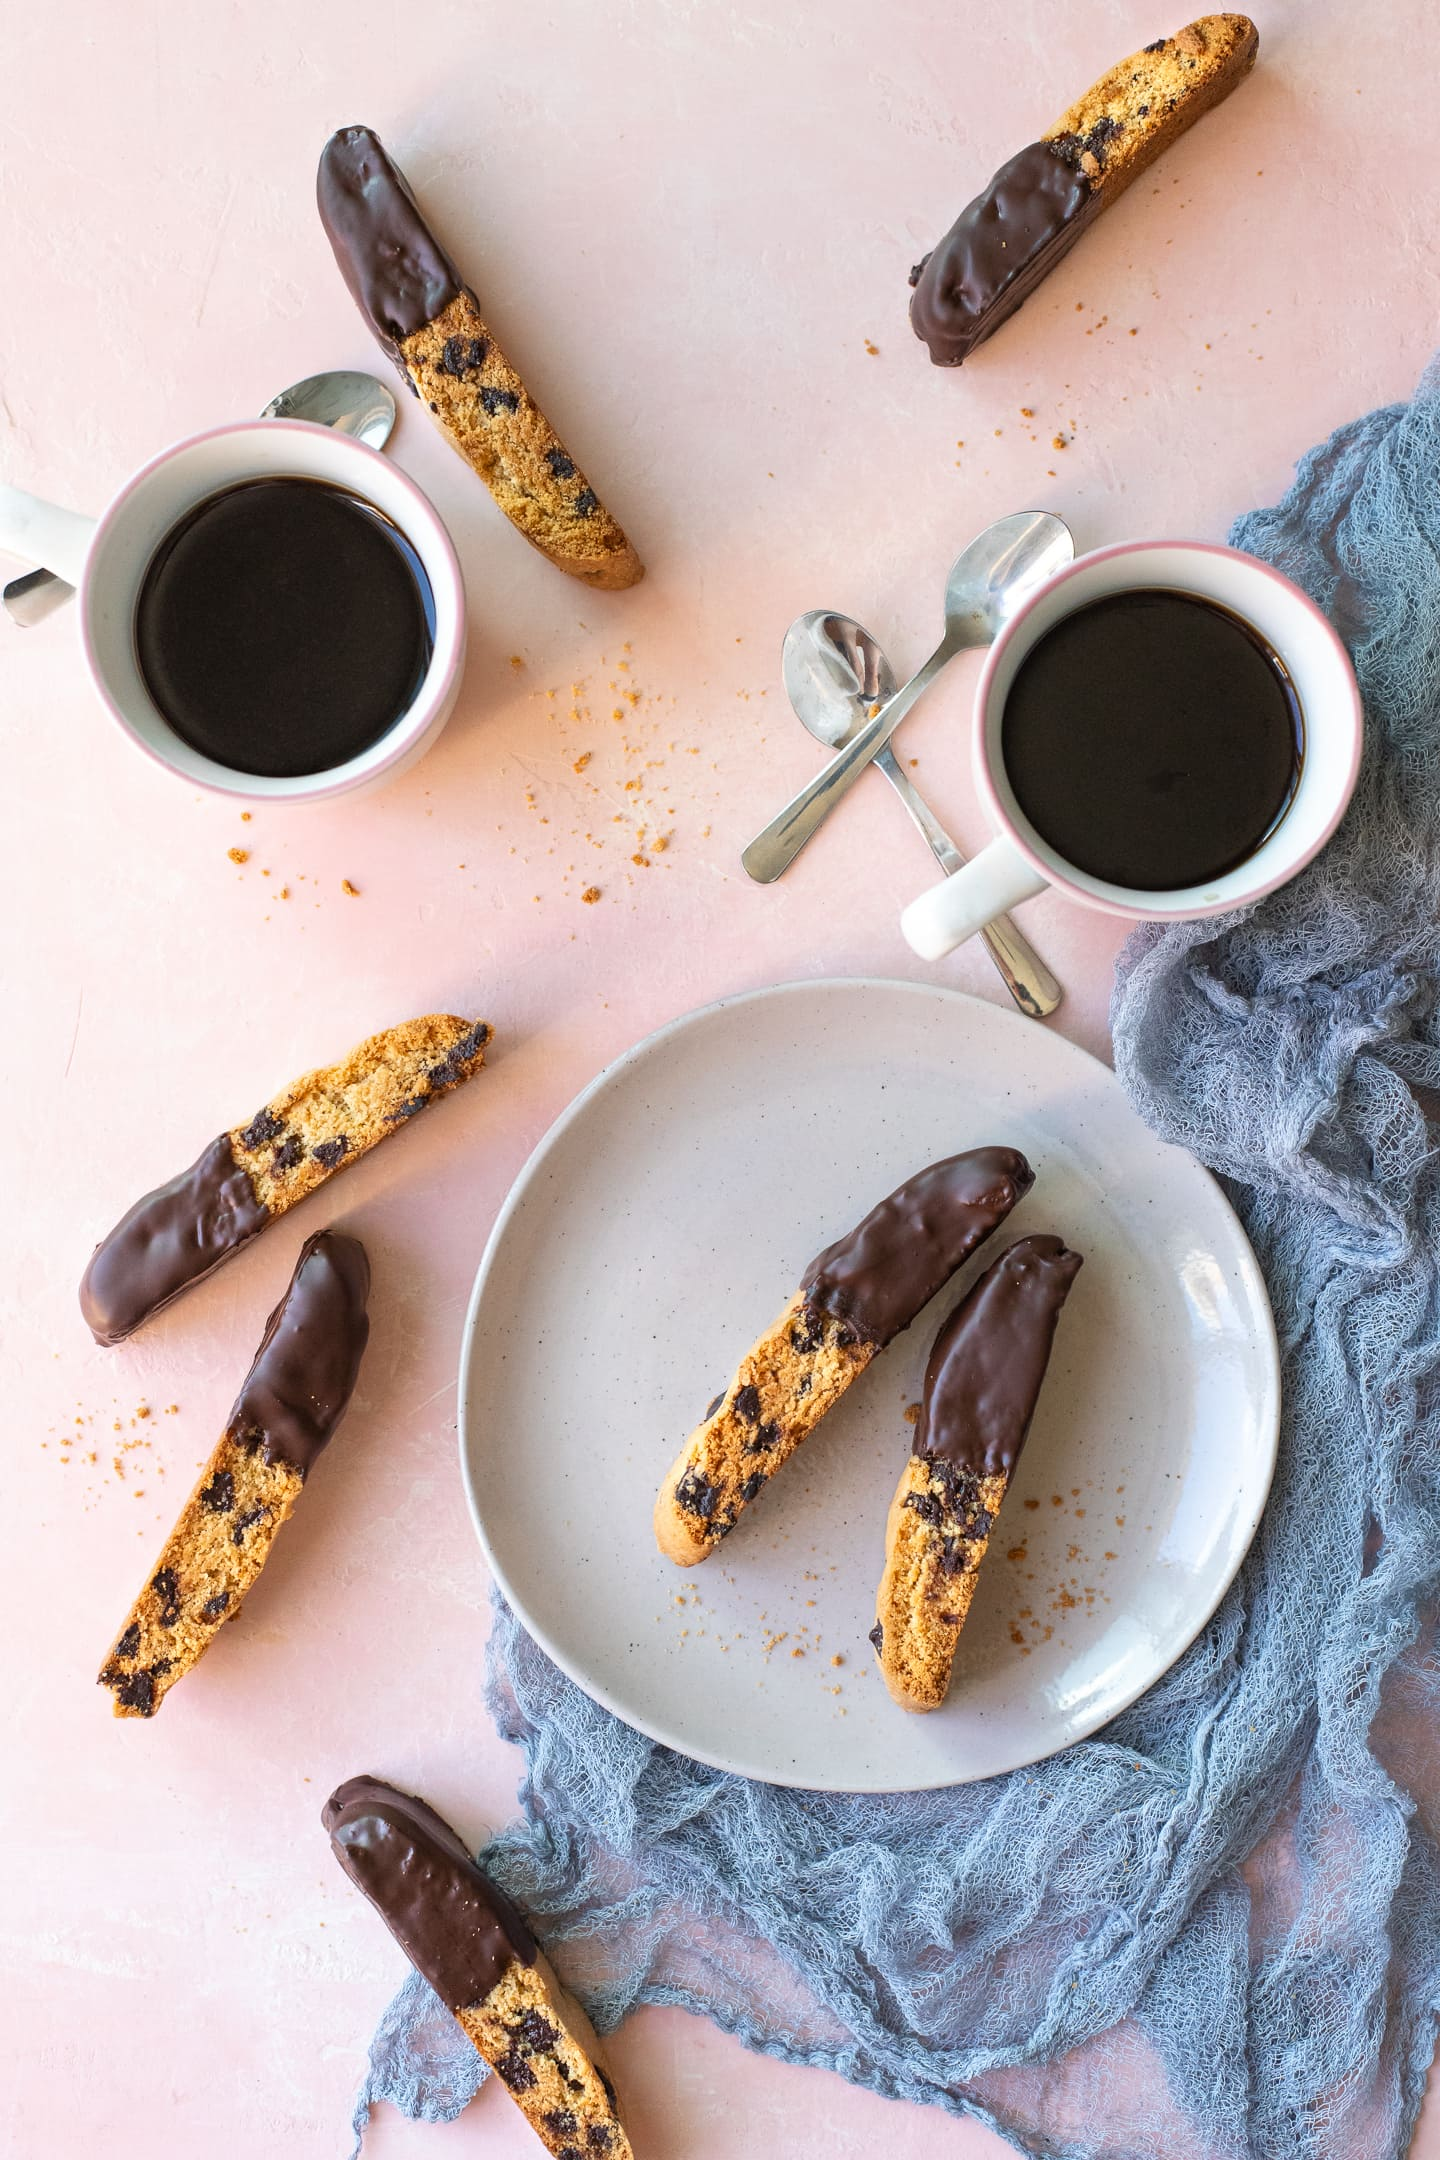 Two chocolate chip biscotti on a grey plate, surrounded by a blue-grey linen, scattered biscotti, and two cups of coffee.